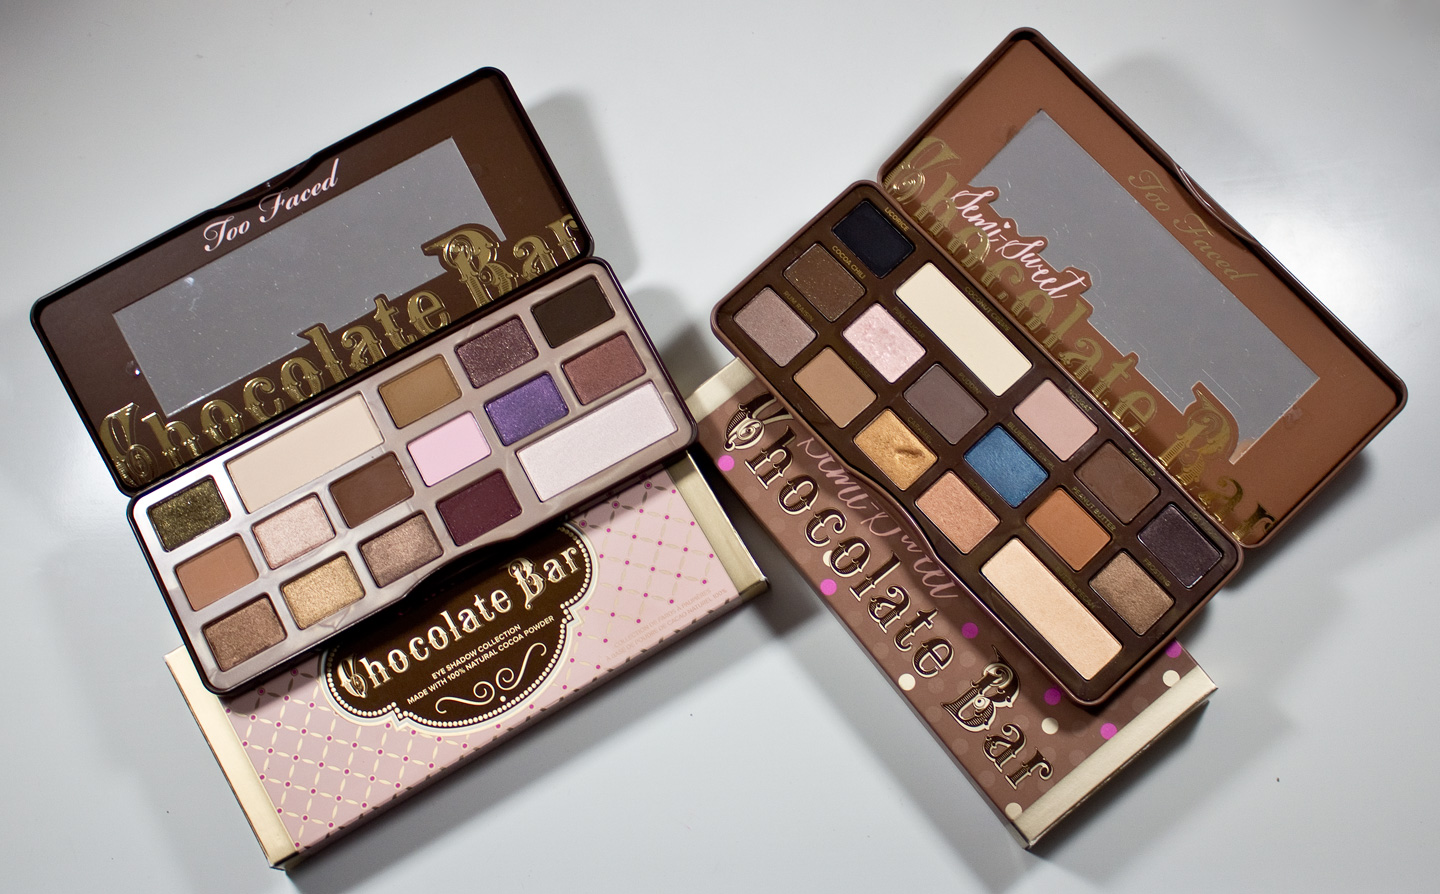 Warpaint And Unicorns Too Faced Chocolate Bar And Semi